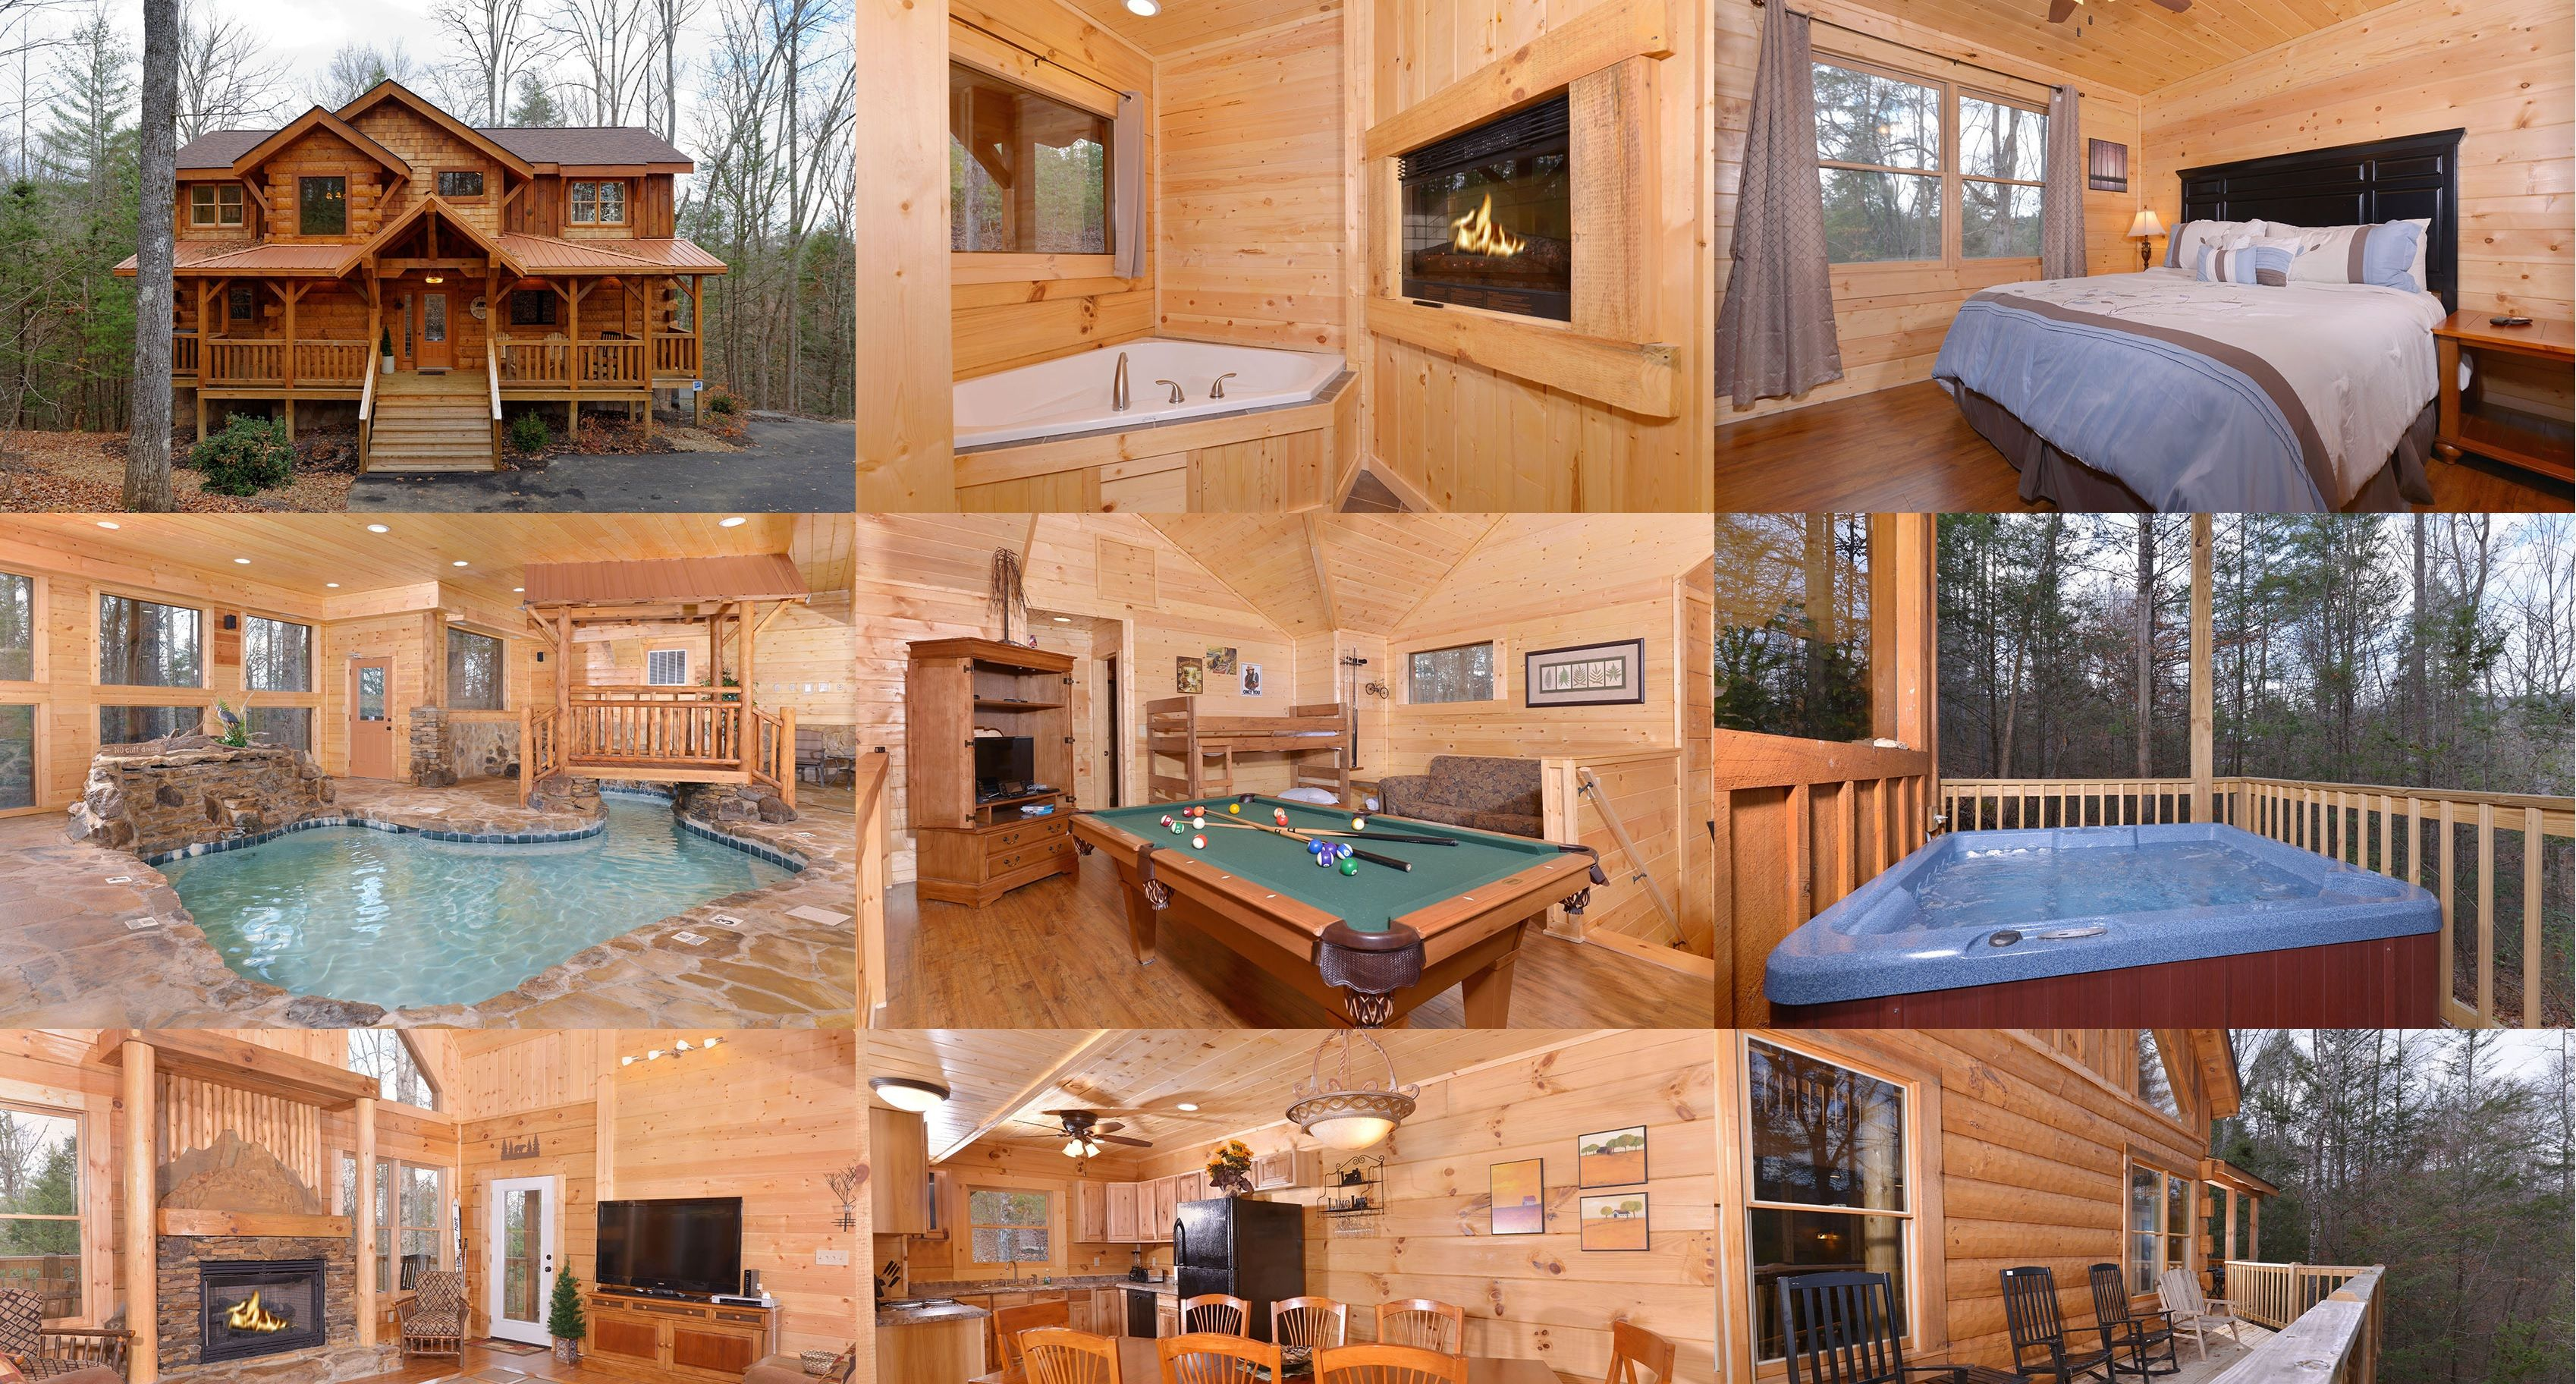 cheapest gatlinburg under rentals indoor cabins vacation and friendly pool cabin dollars tub tn pet rent for rental in affordable with hot